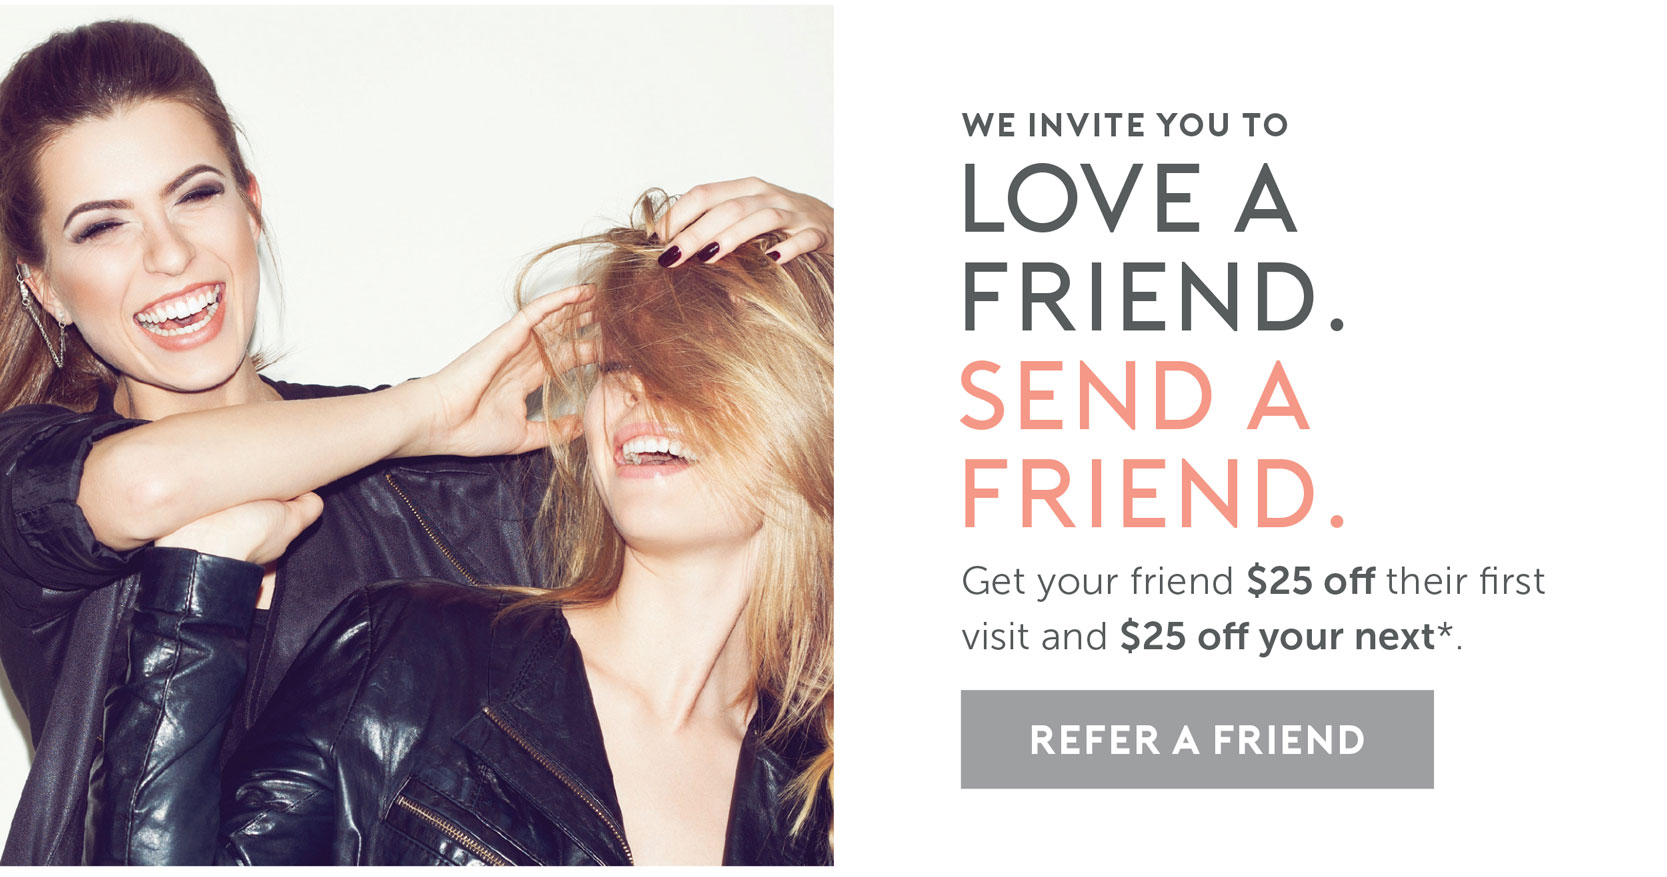 We invite you to Love a Friend. Send a Friend. Get your friend $25 off their first visit and $25 off your next